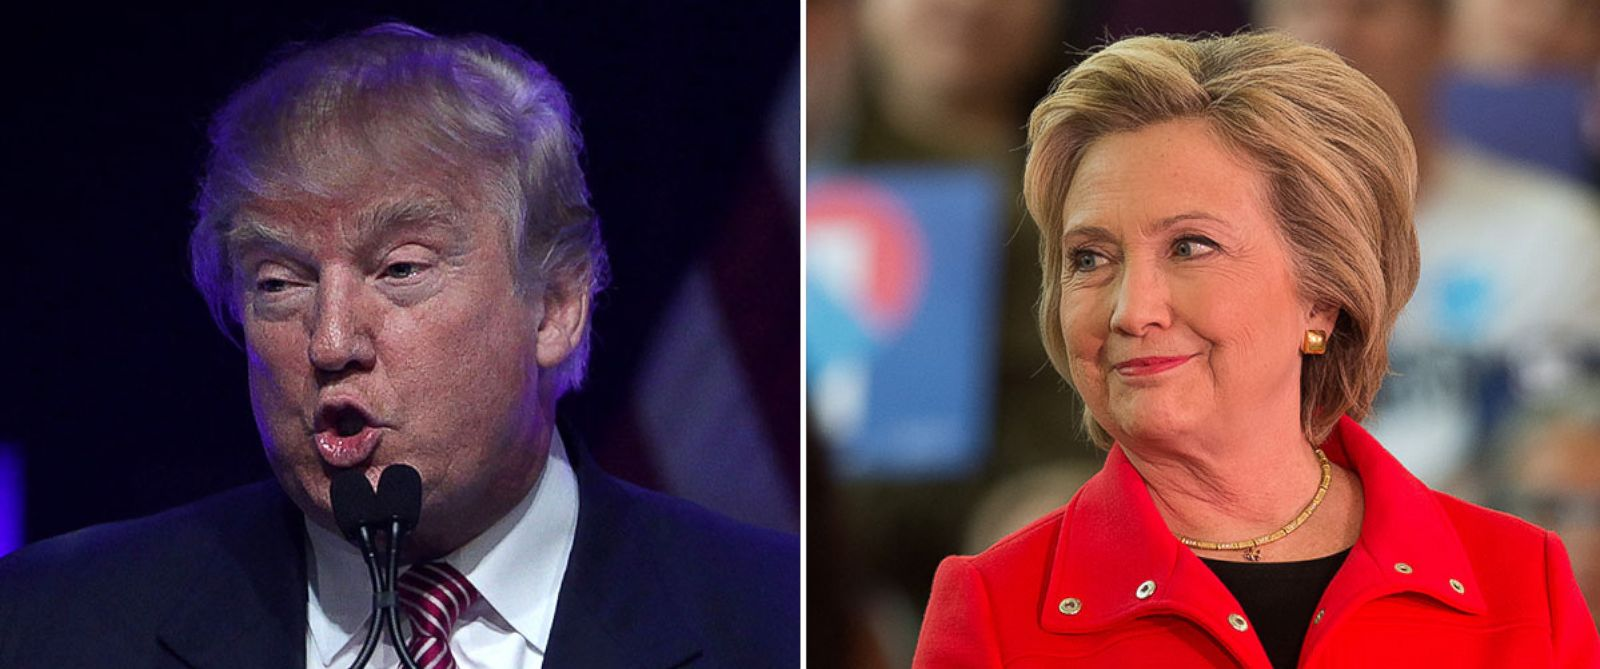 PHOTO: Republican presidential candidate Donald Trump and Democratic presidential candidate Hillary Clinton.